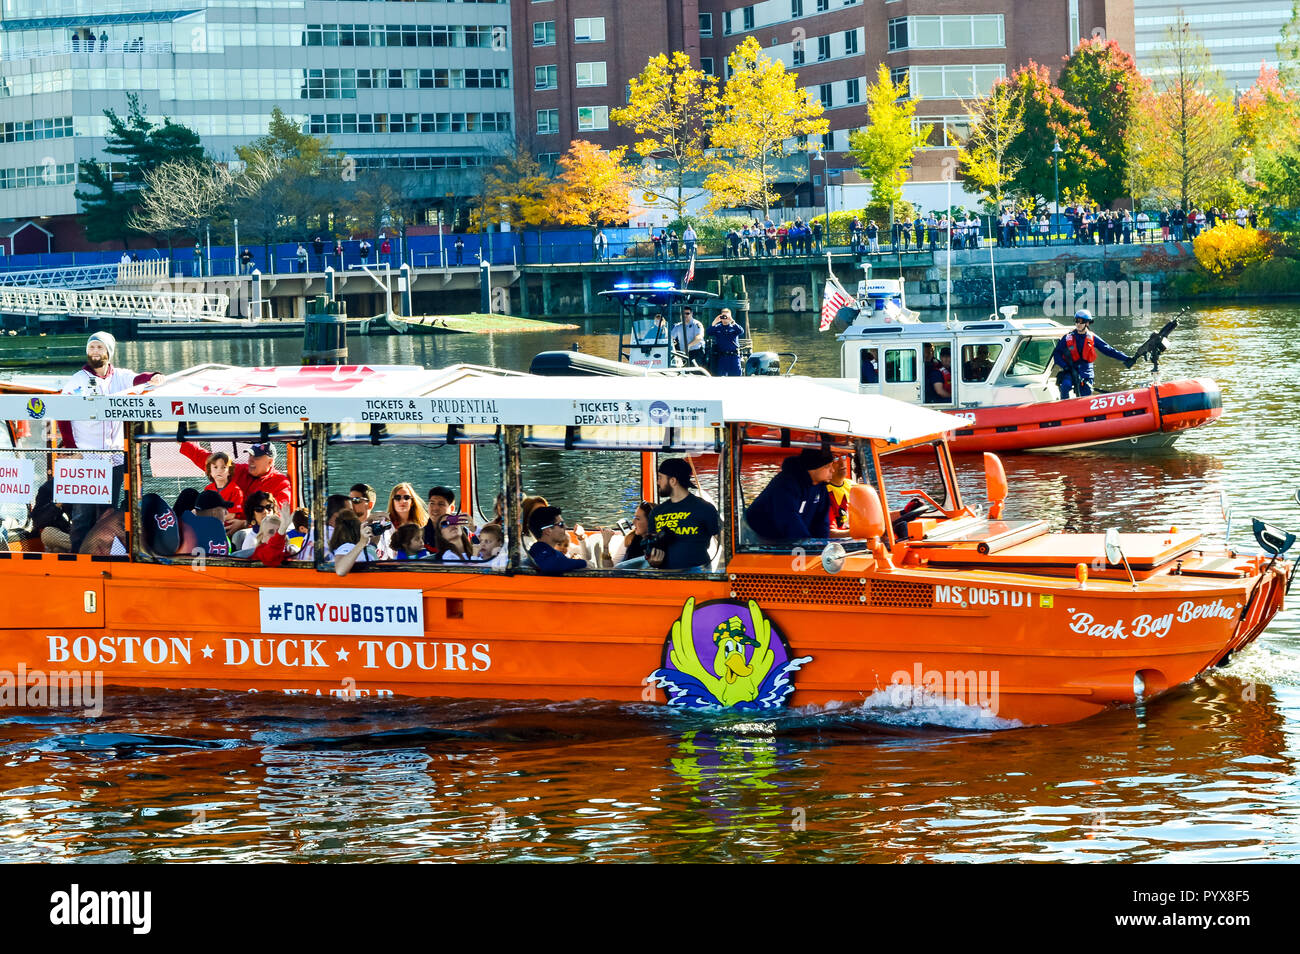 2013 World Series Champions Red Sox Duck Boat Parade Stock Photo